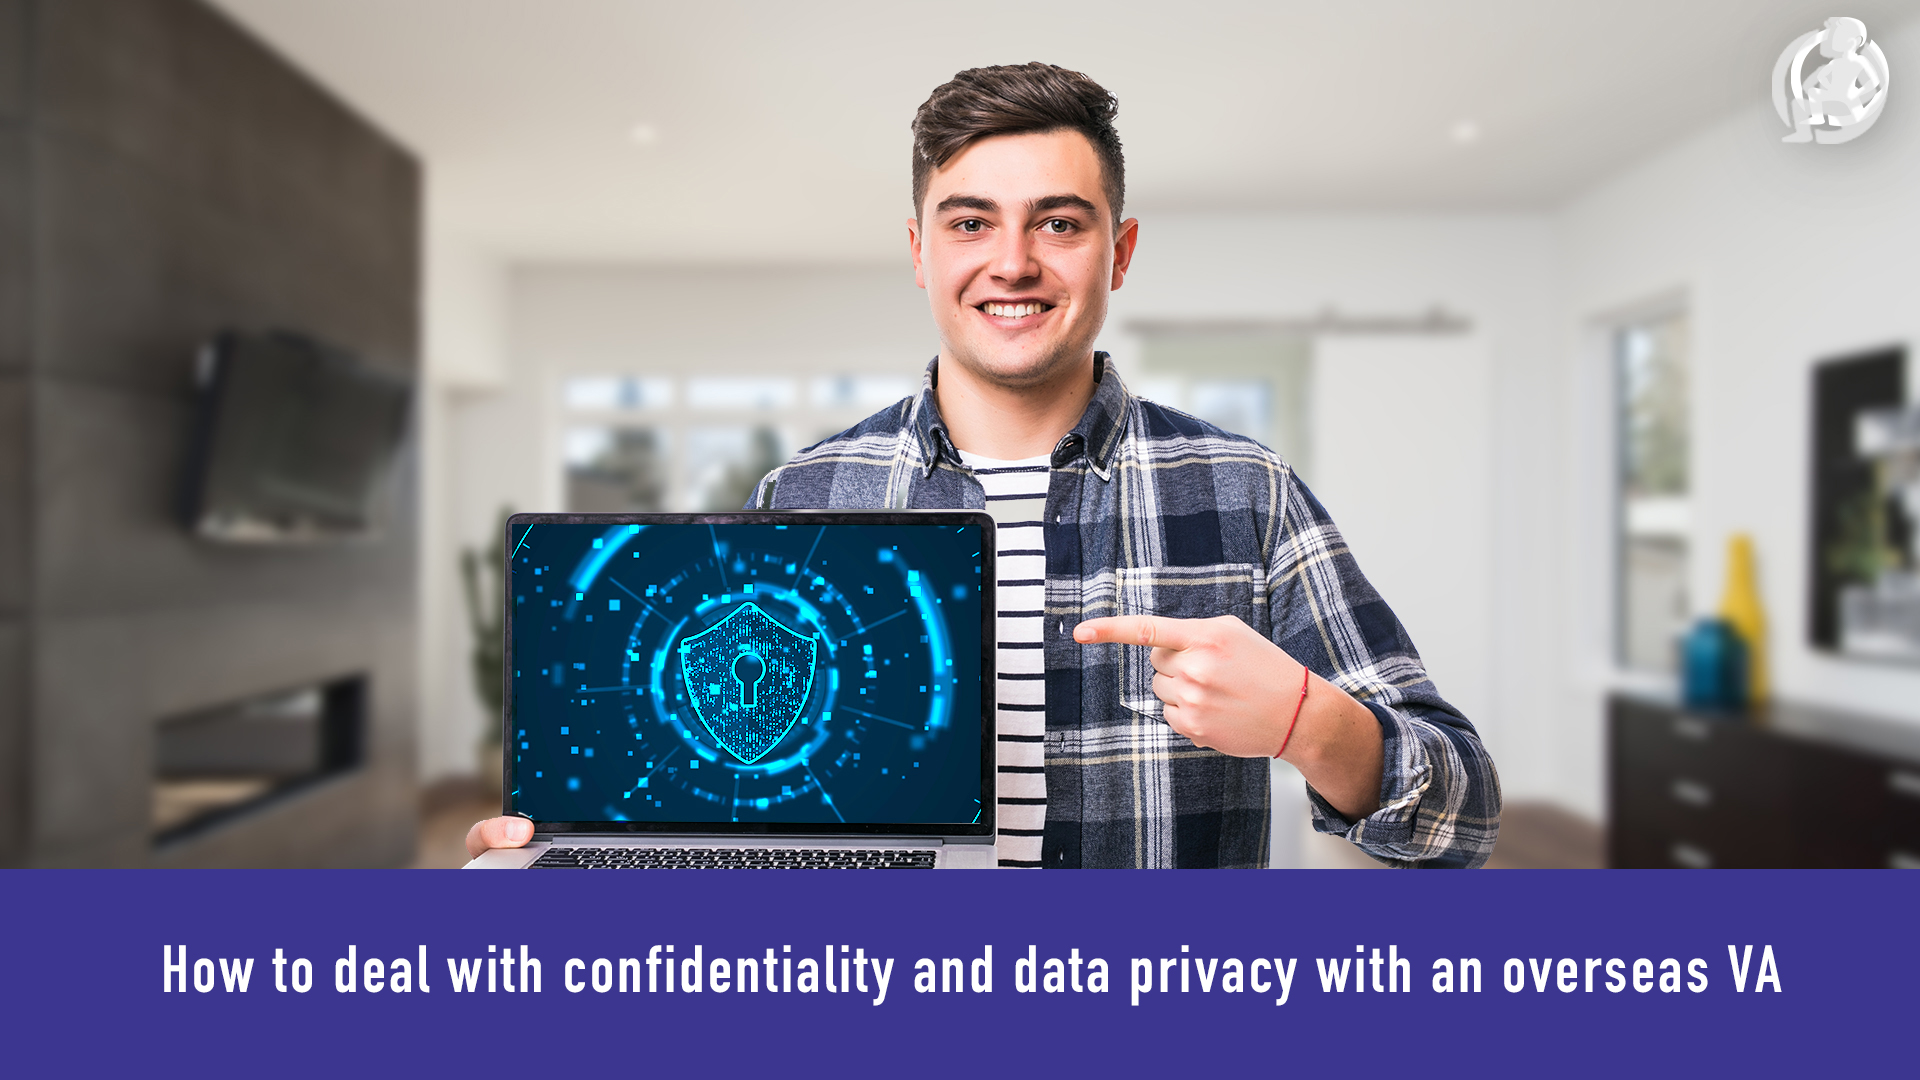 How to deal with confidentiality and data privacy with an overseas VA